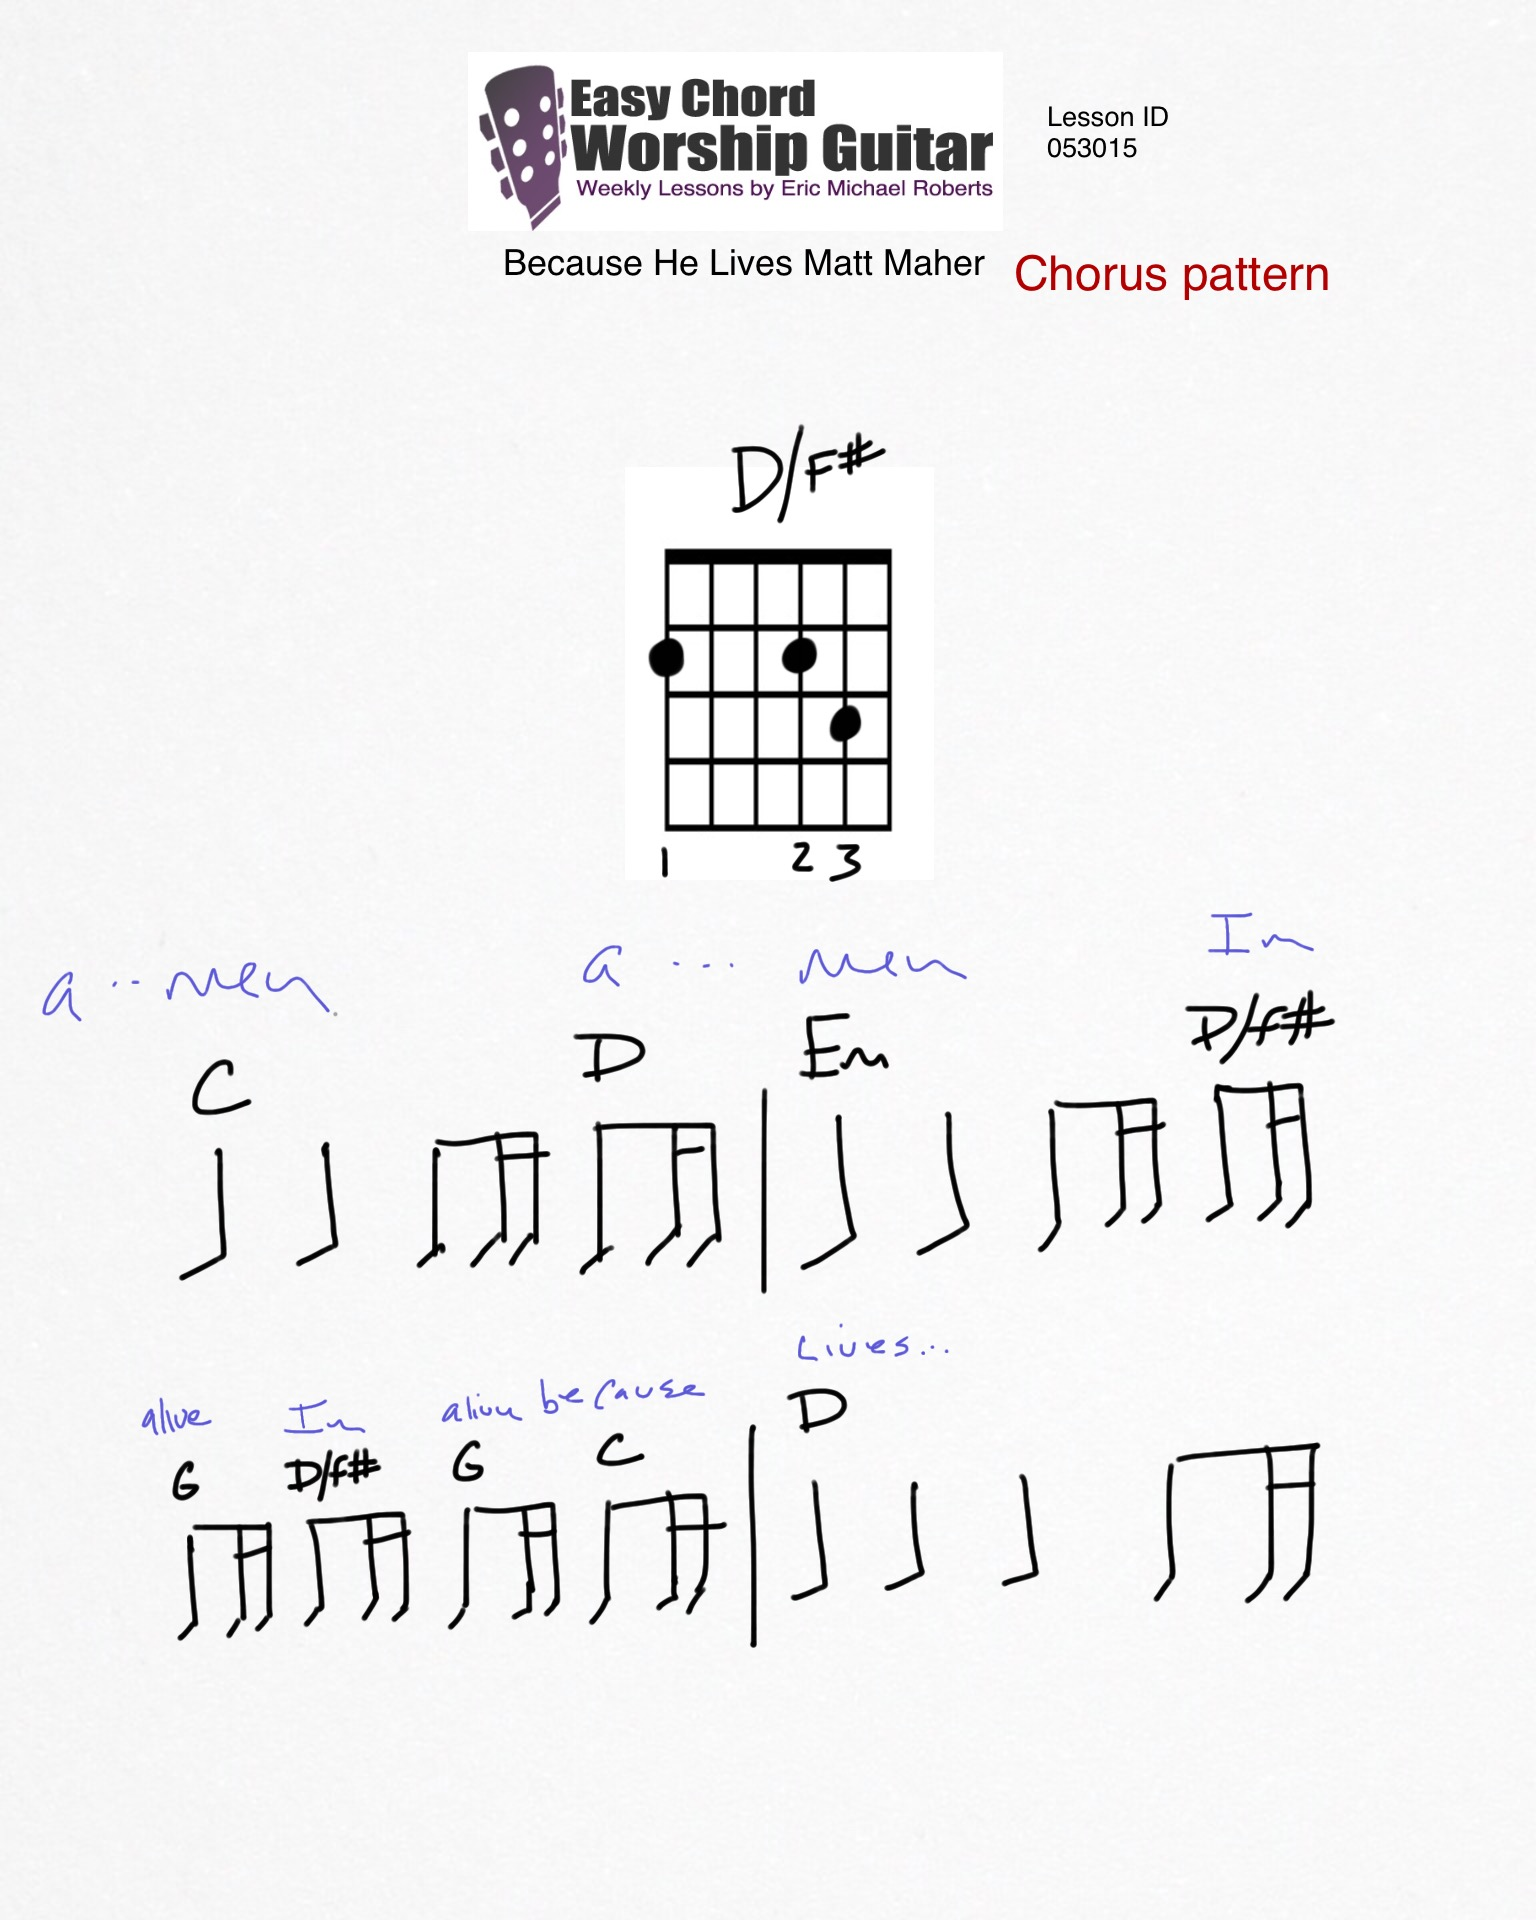 because he lives chords pdf